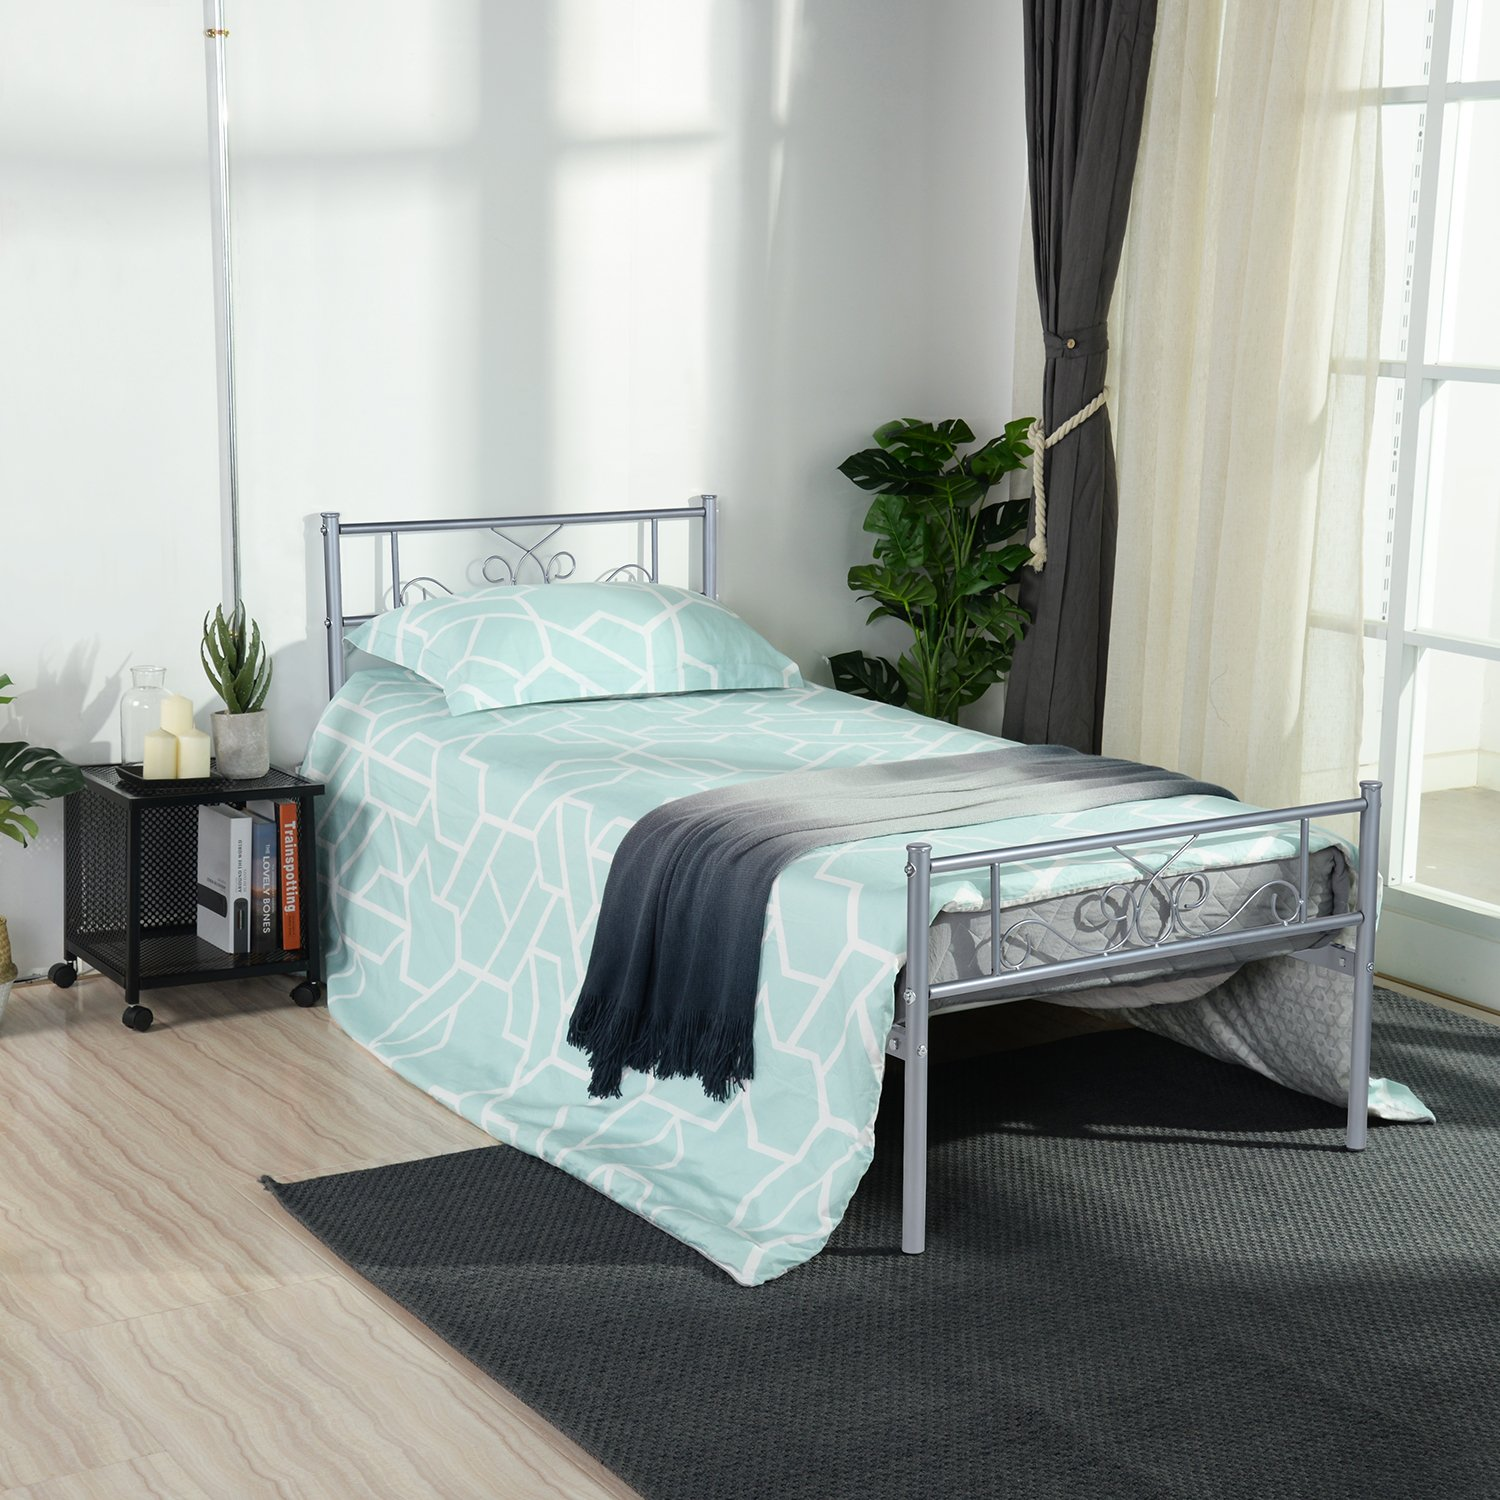 SimLife Twin Size Metal Bed Frame with Headboard and Footboard Mattress Foundation Platform Bed for Kids No Box Spring Needed Silver